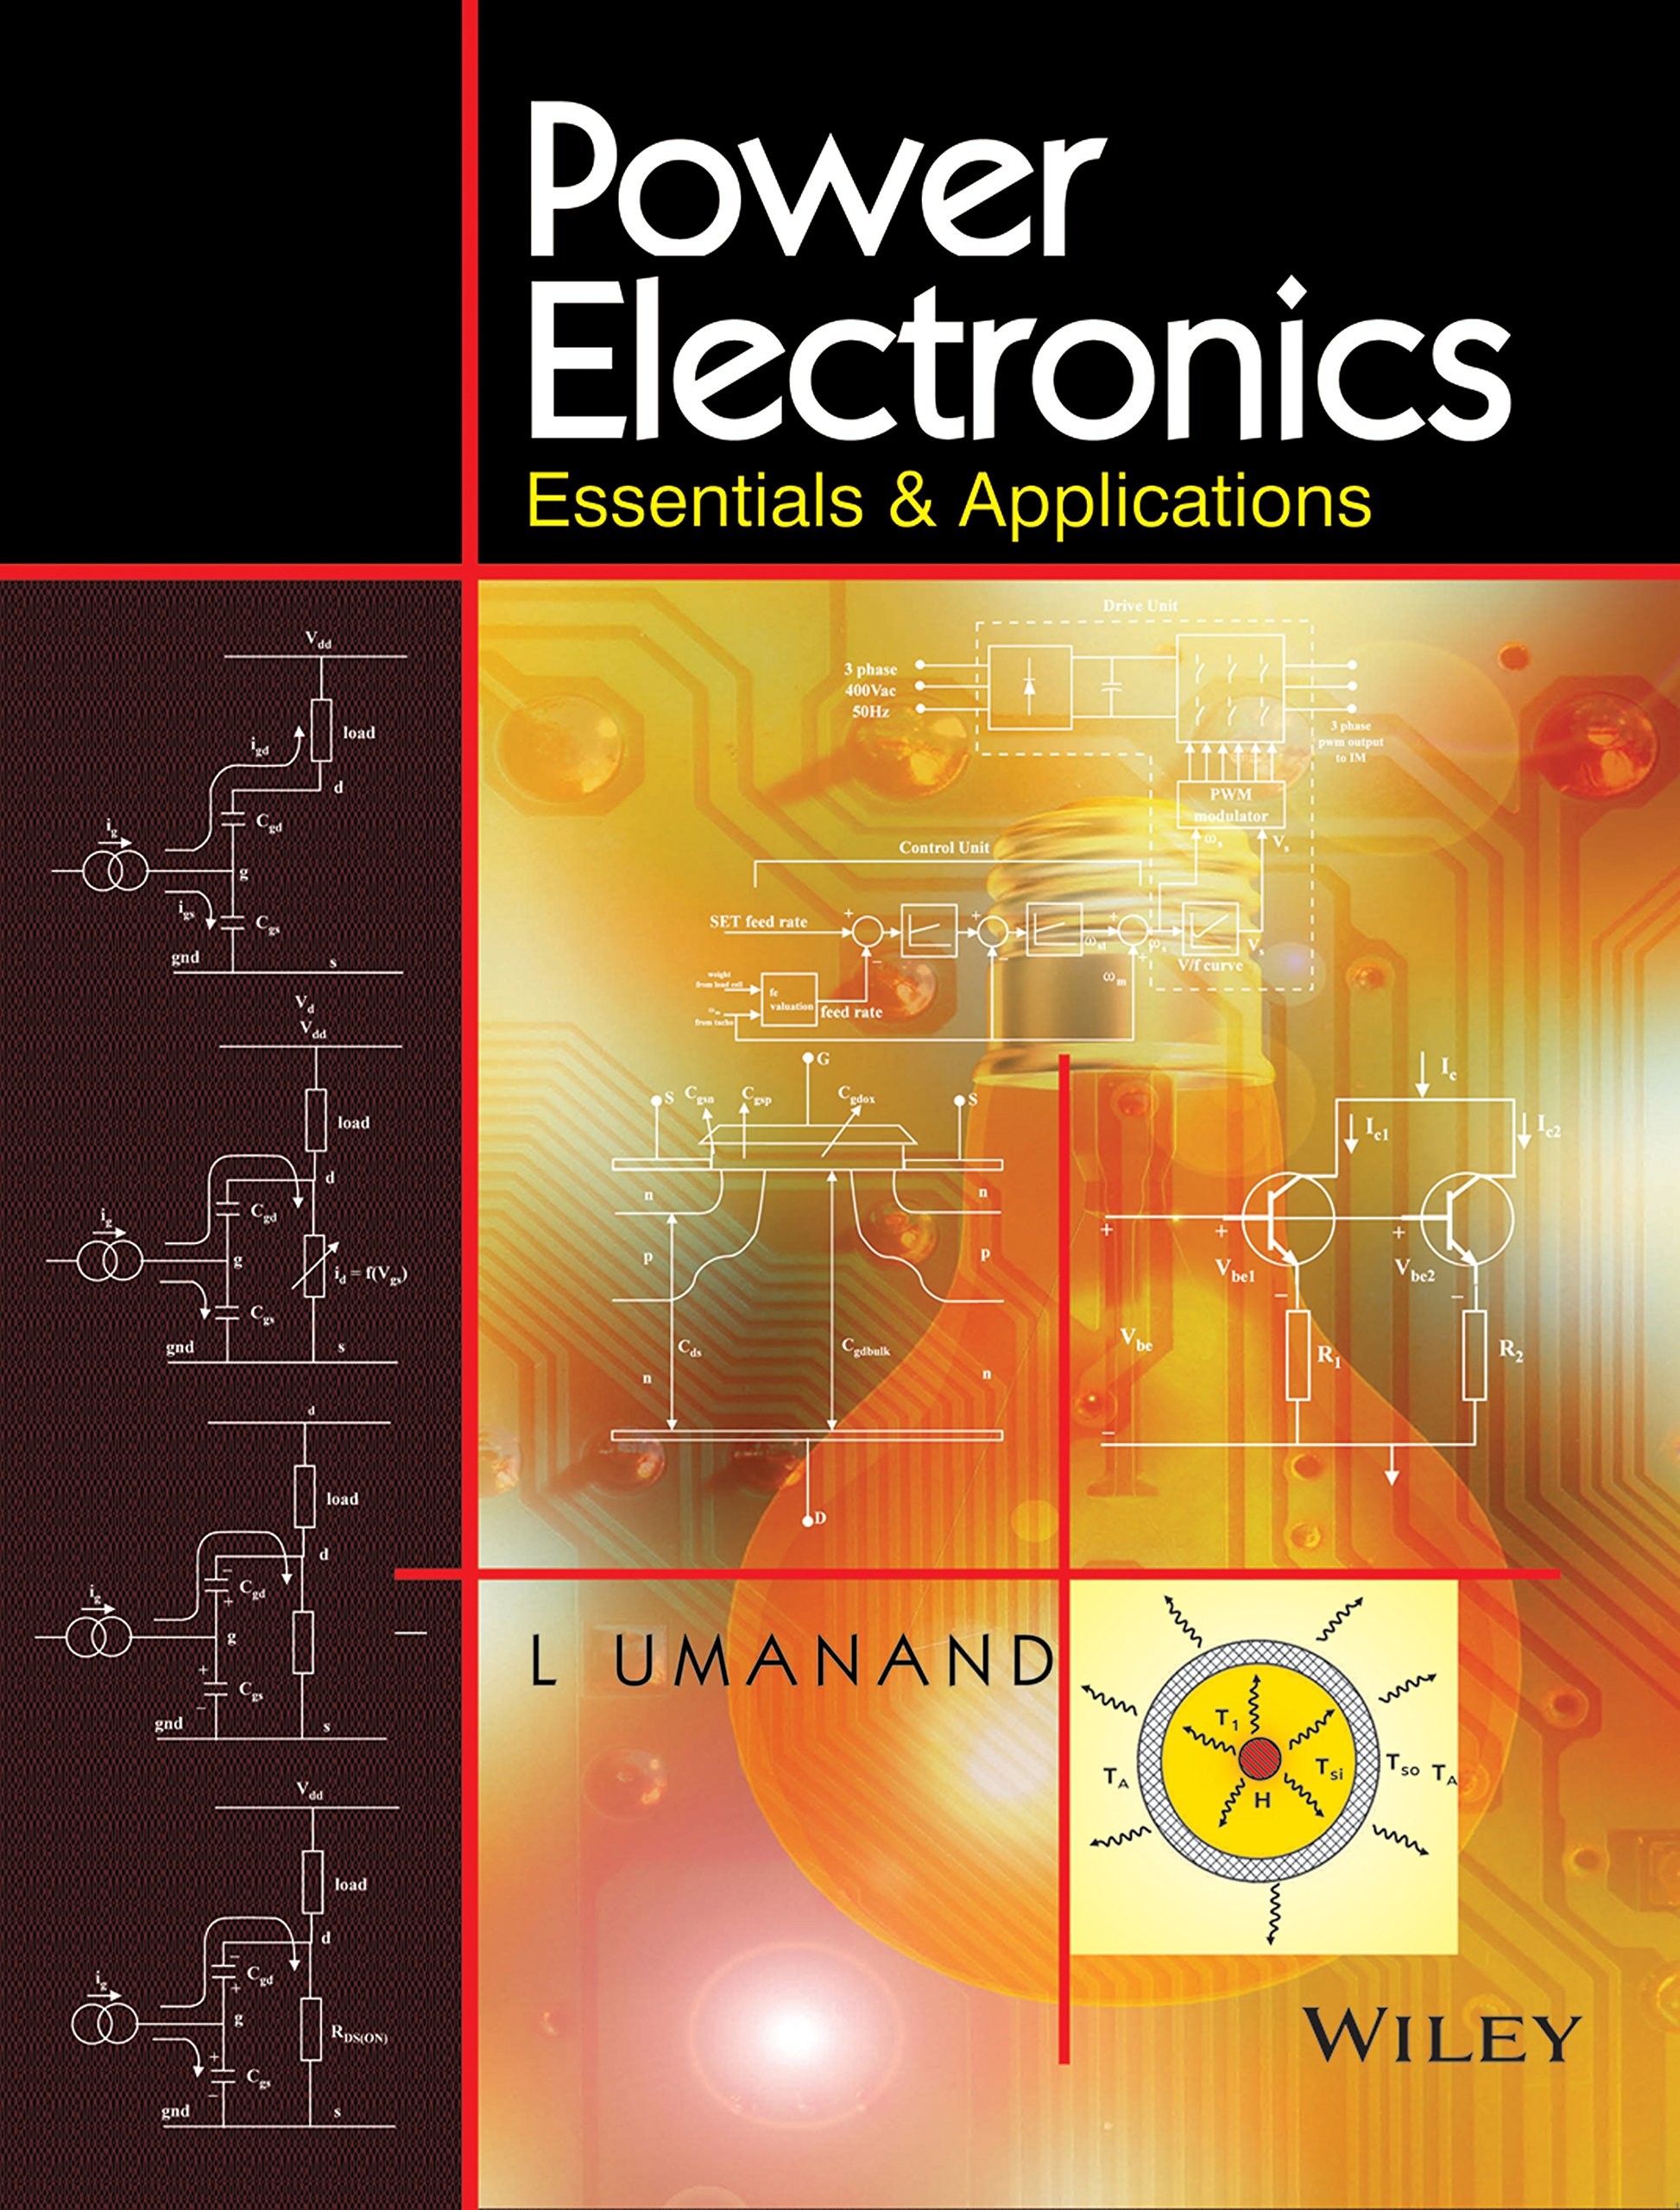 Buy Power Electronics: Essentials & Applications (WIND) Book